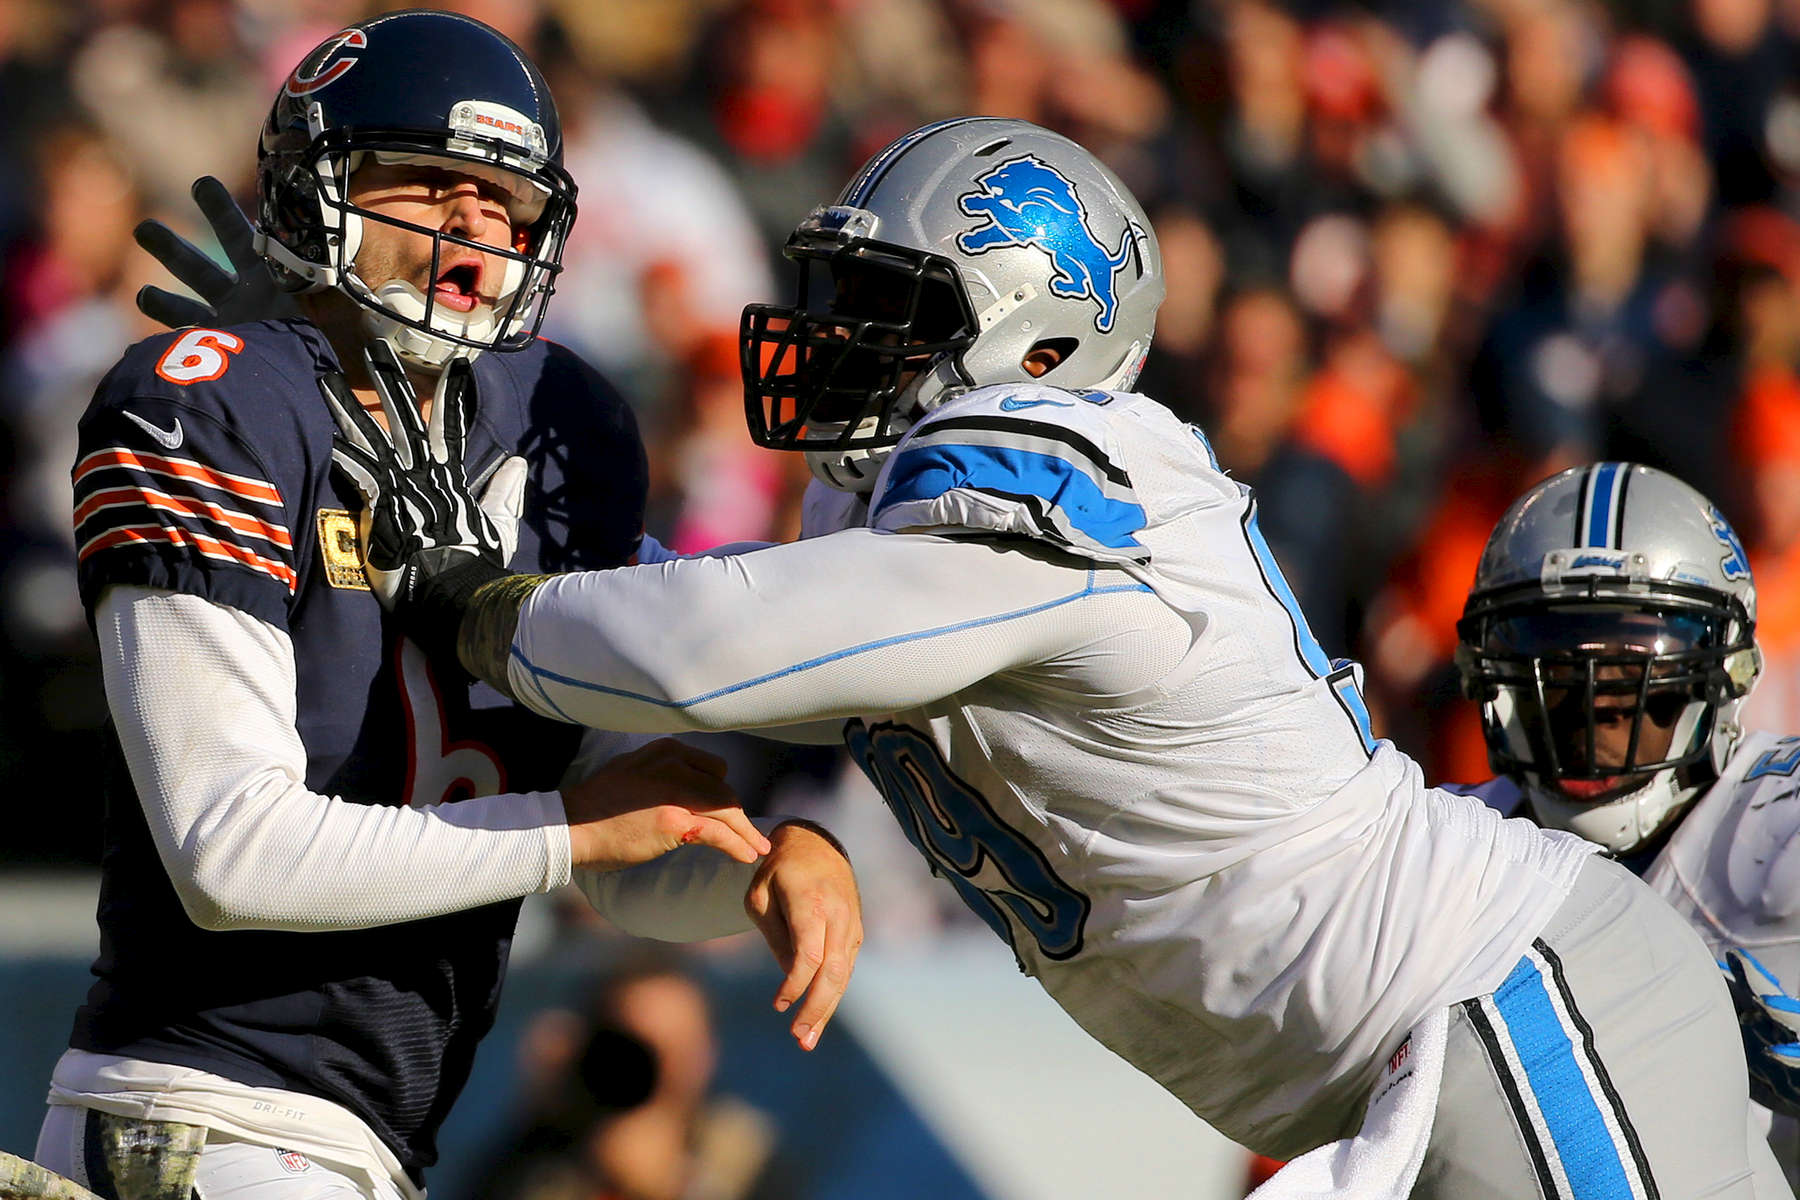 Chicago Bears quarterback Jay Cutler takes a hard hit from Detroit Lions defensive tackle Jermelle Cudjo after completing a pass in the third quarter of a football game between the Chicago Bears and the Detroit Lions at Soldier Field in Chicago.